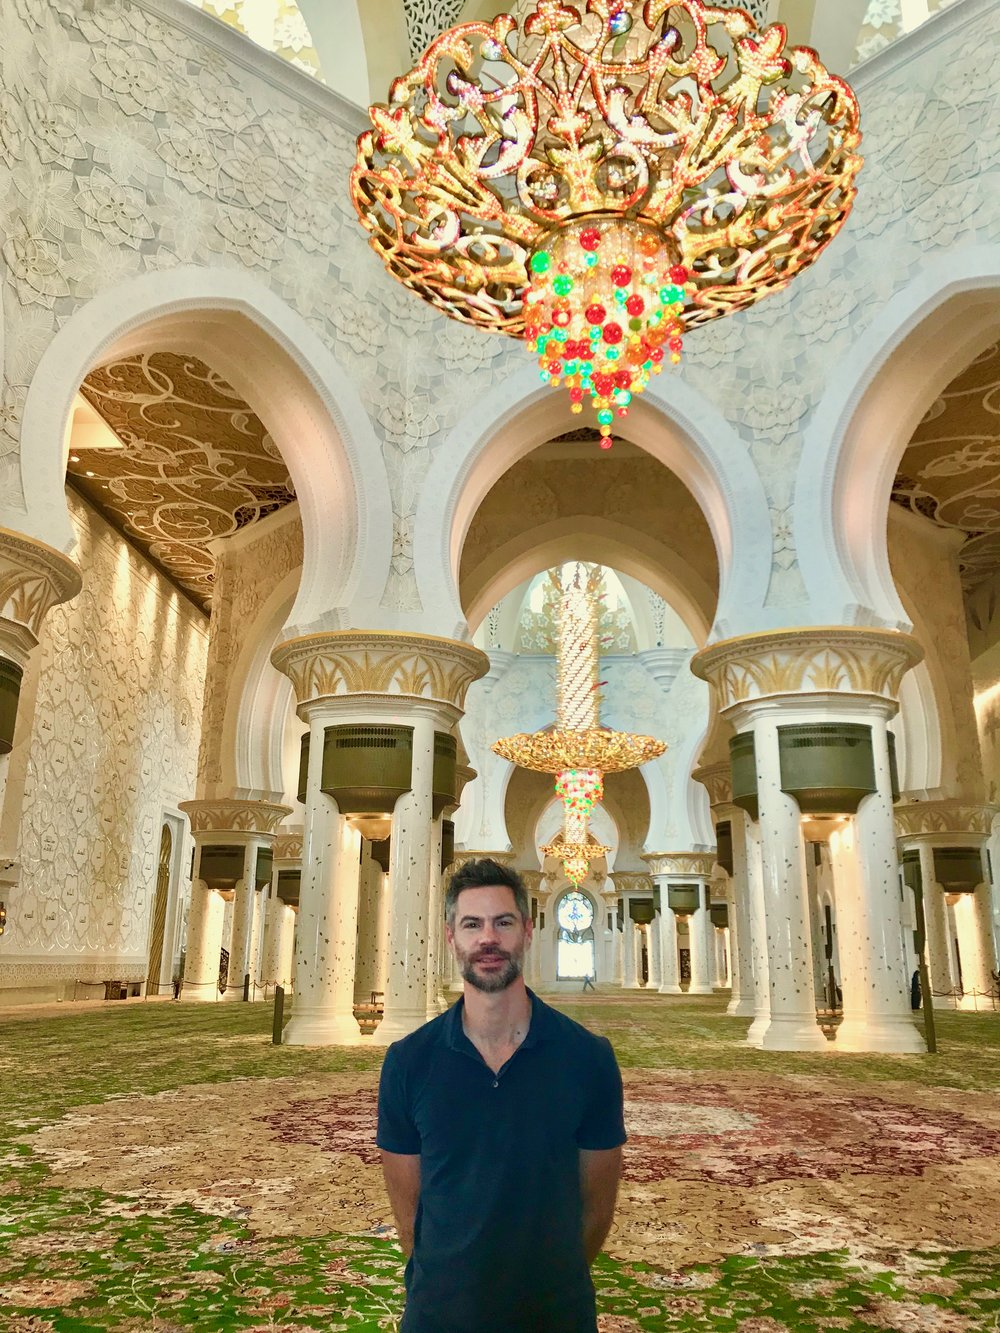 The author at Sheikh Zayed mosque in Abu Dhabi.